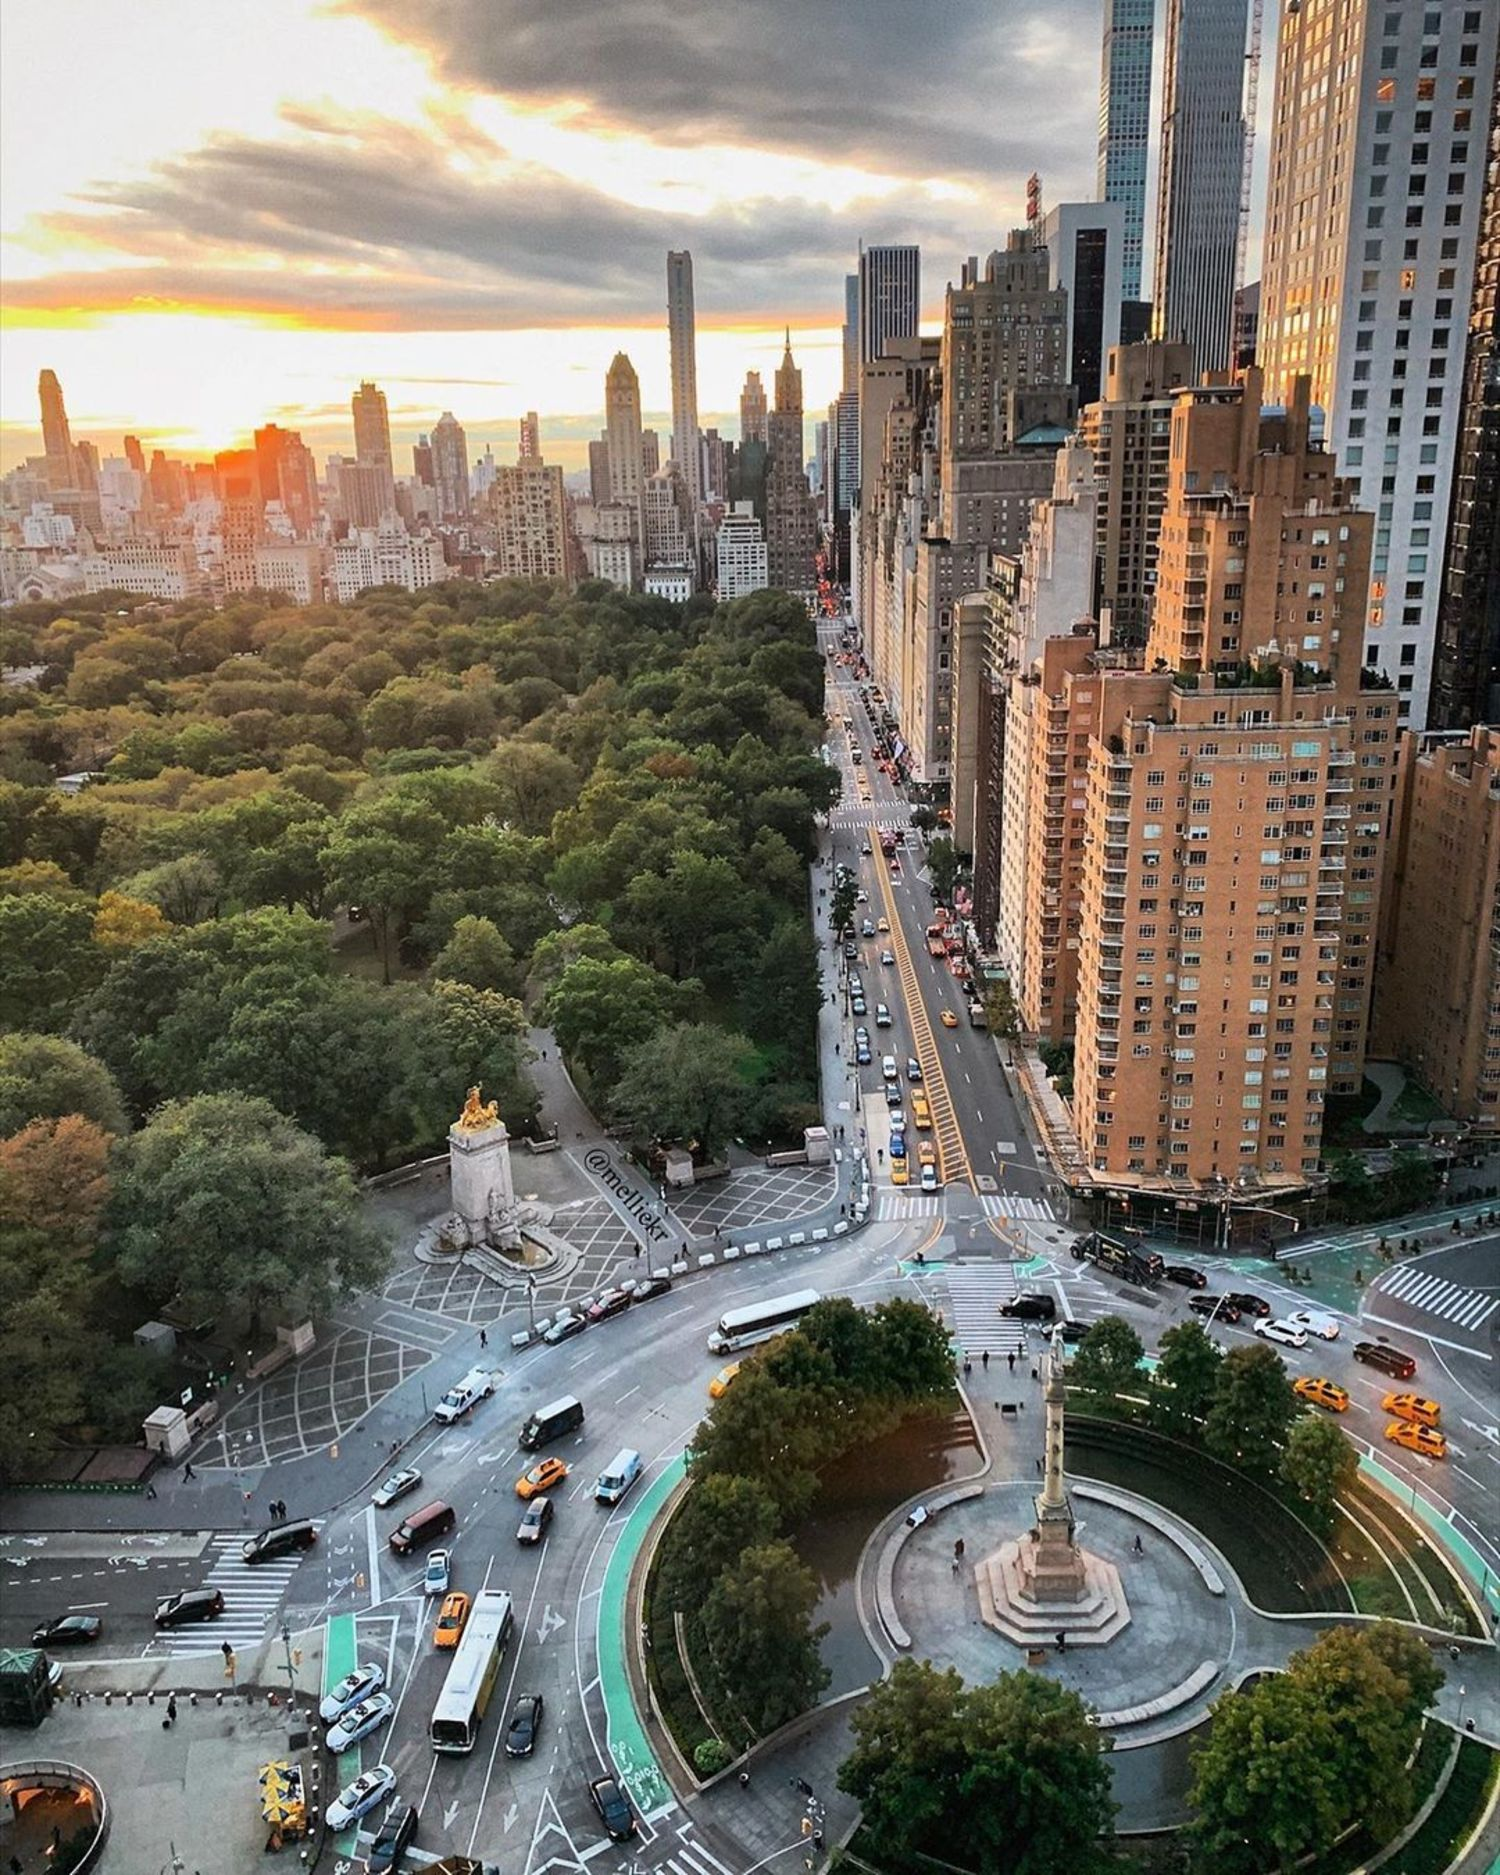 Sunrise over Columbus Circle and Central Park, Manhattan